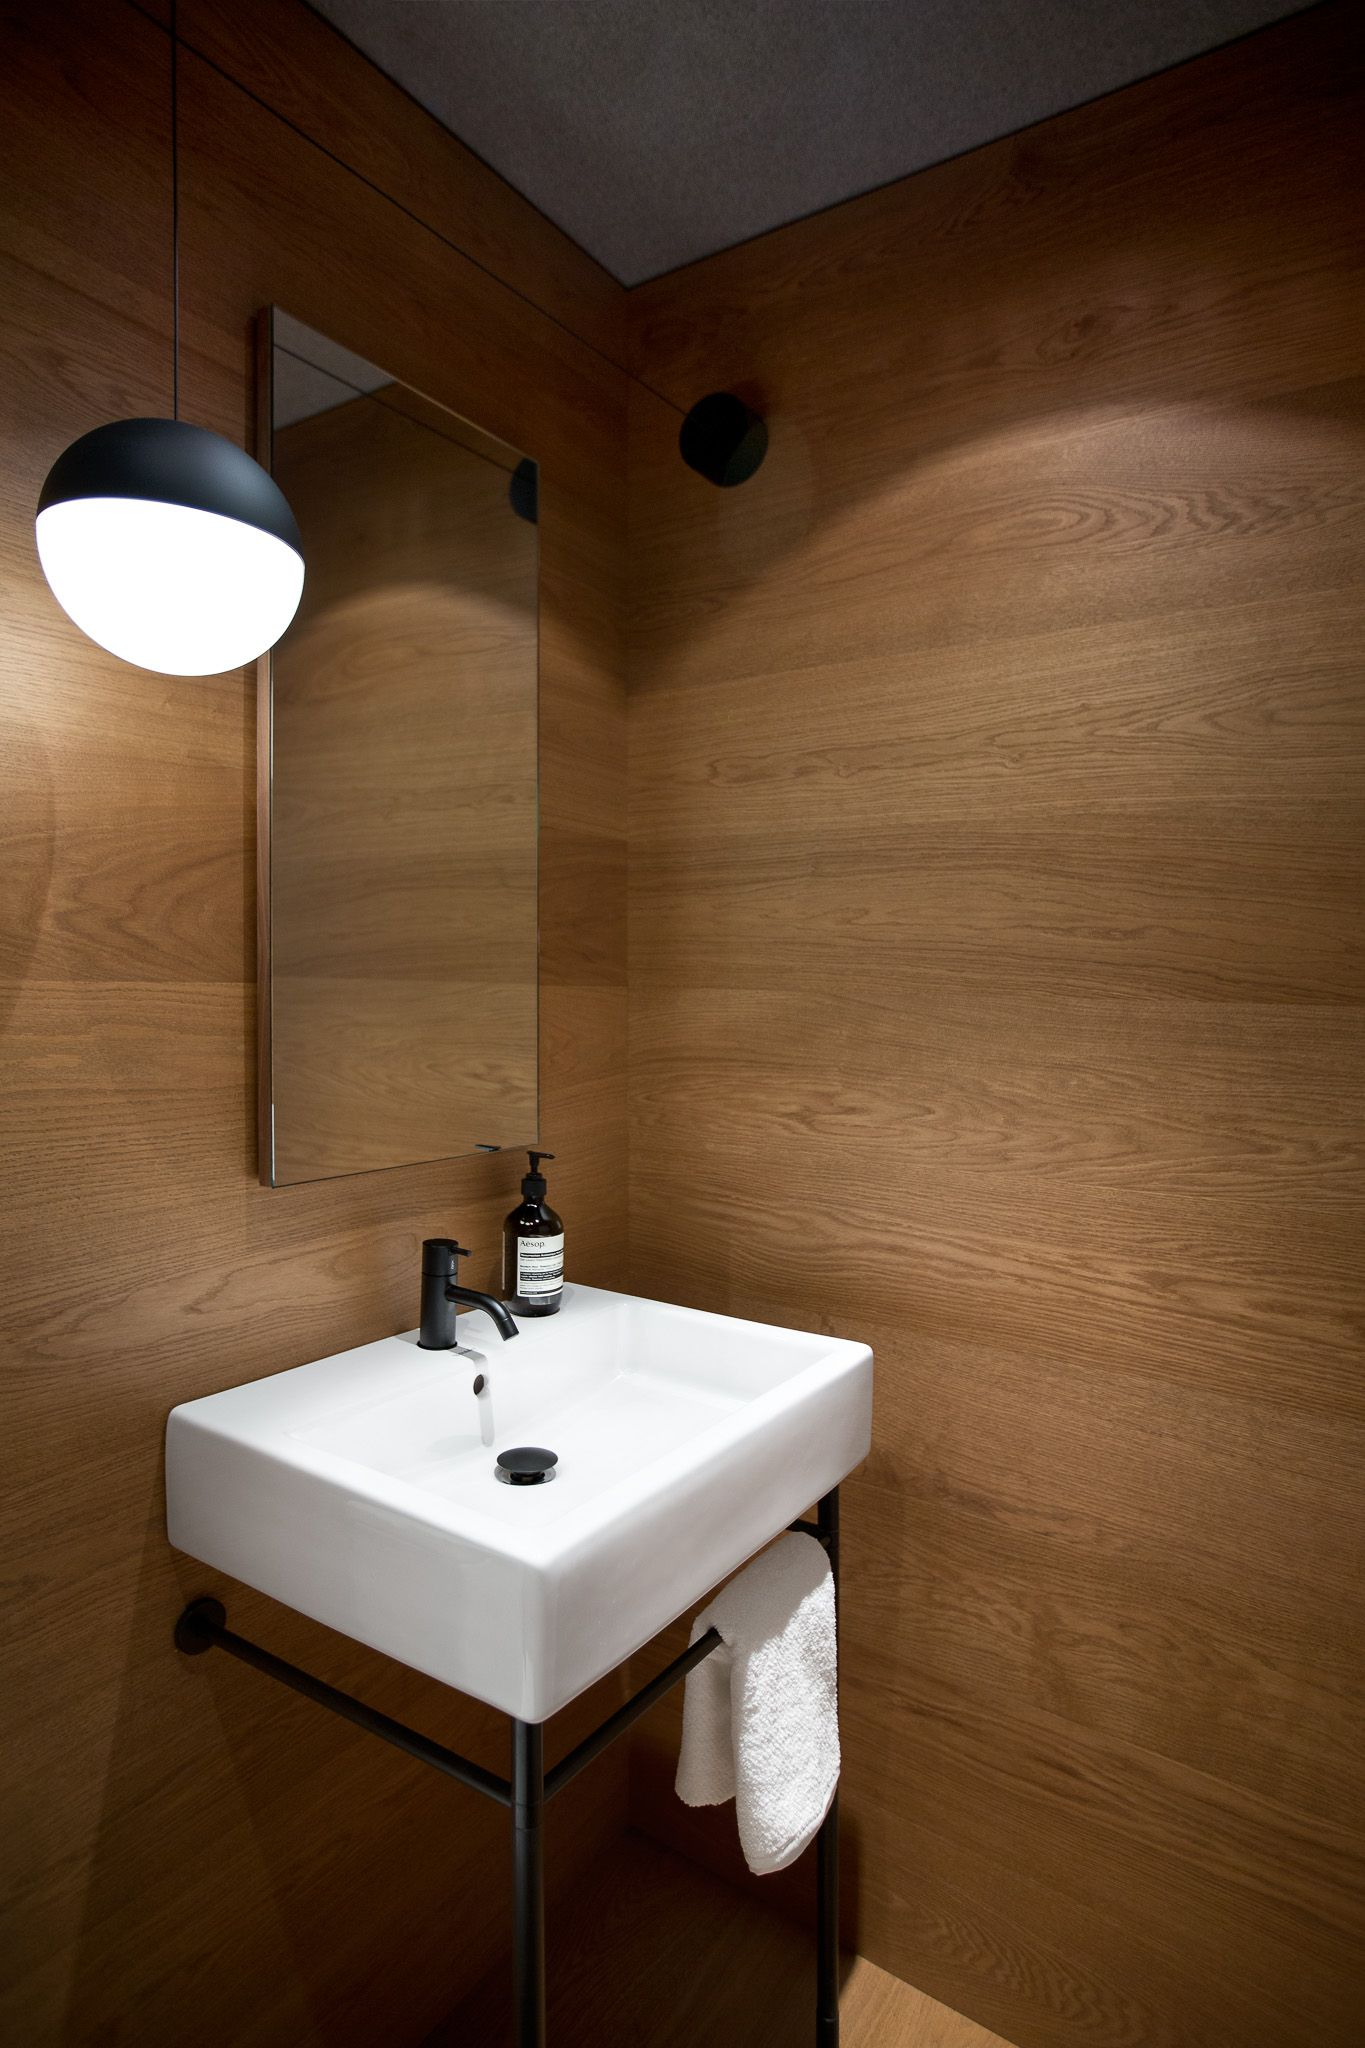 A Flos Pendant Light Illuminates The Powder Room, Which Is